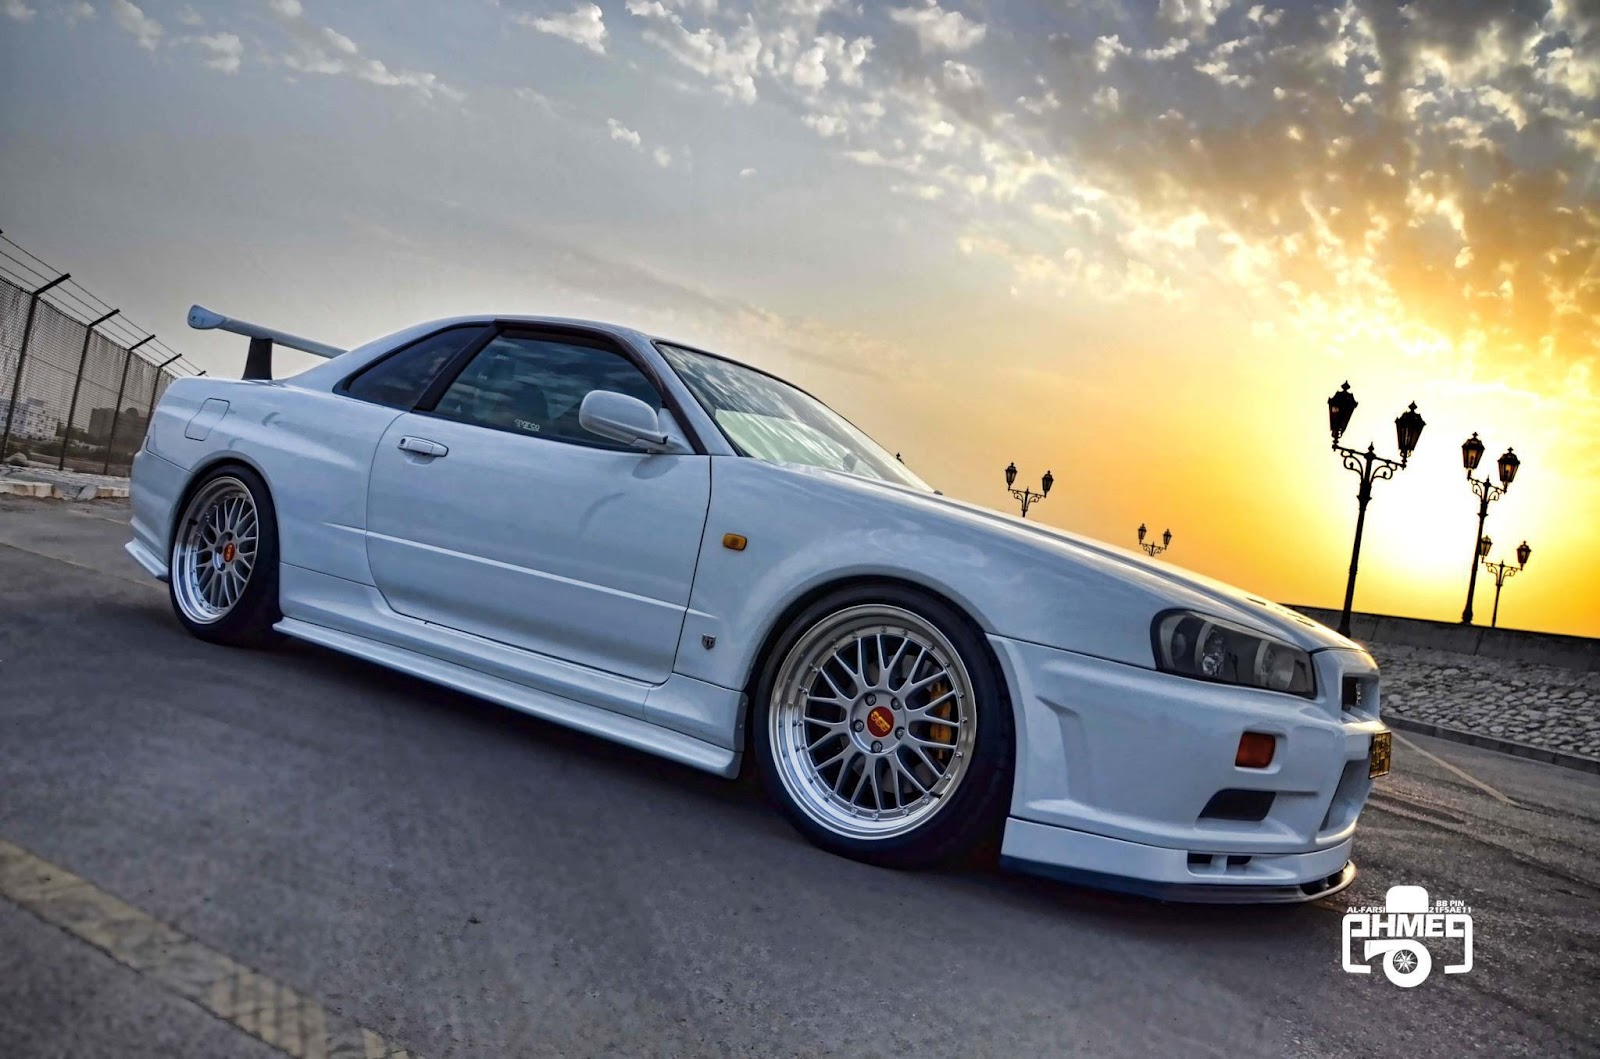 car pics and vids nissan skyline r34 gt r collection 16. Black Bedroom Furniture Sets. Home Design Ideas